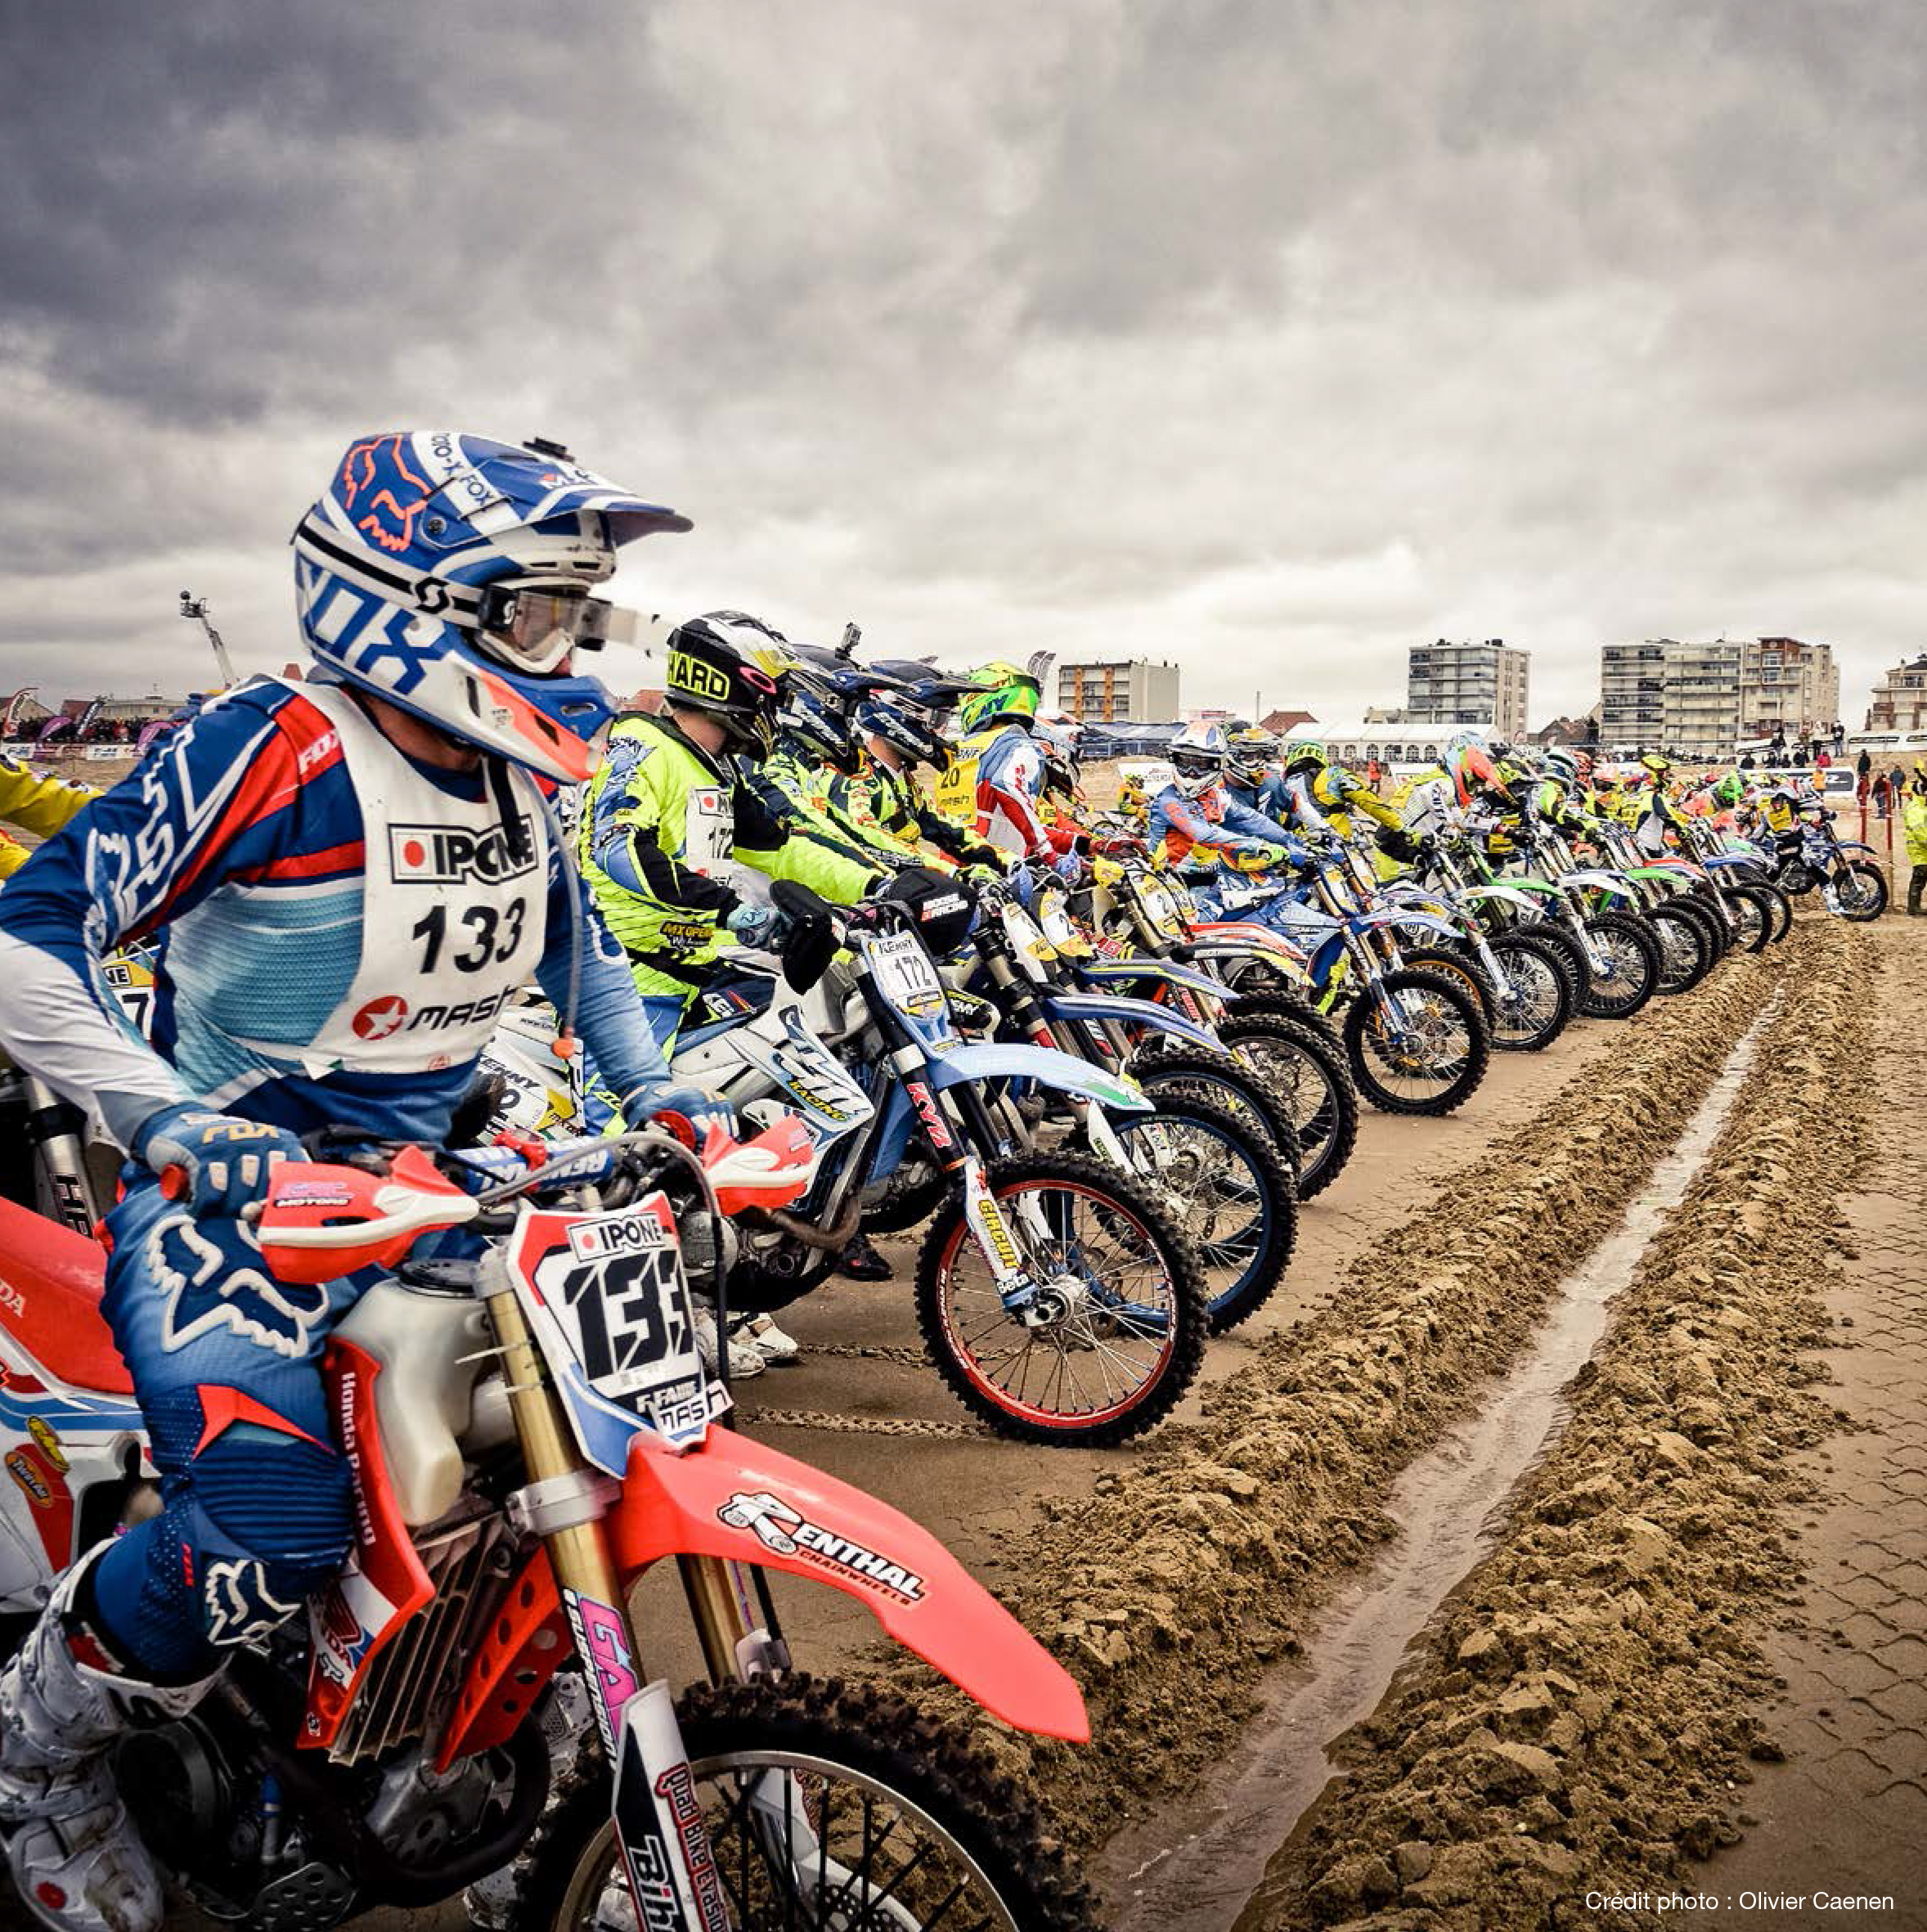 Enduropale du Touquet - 2015 - grid sand start - photo Olivier Caenen